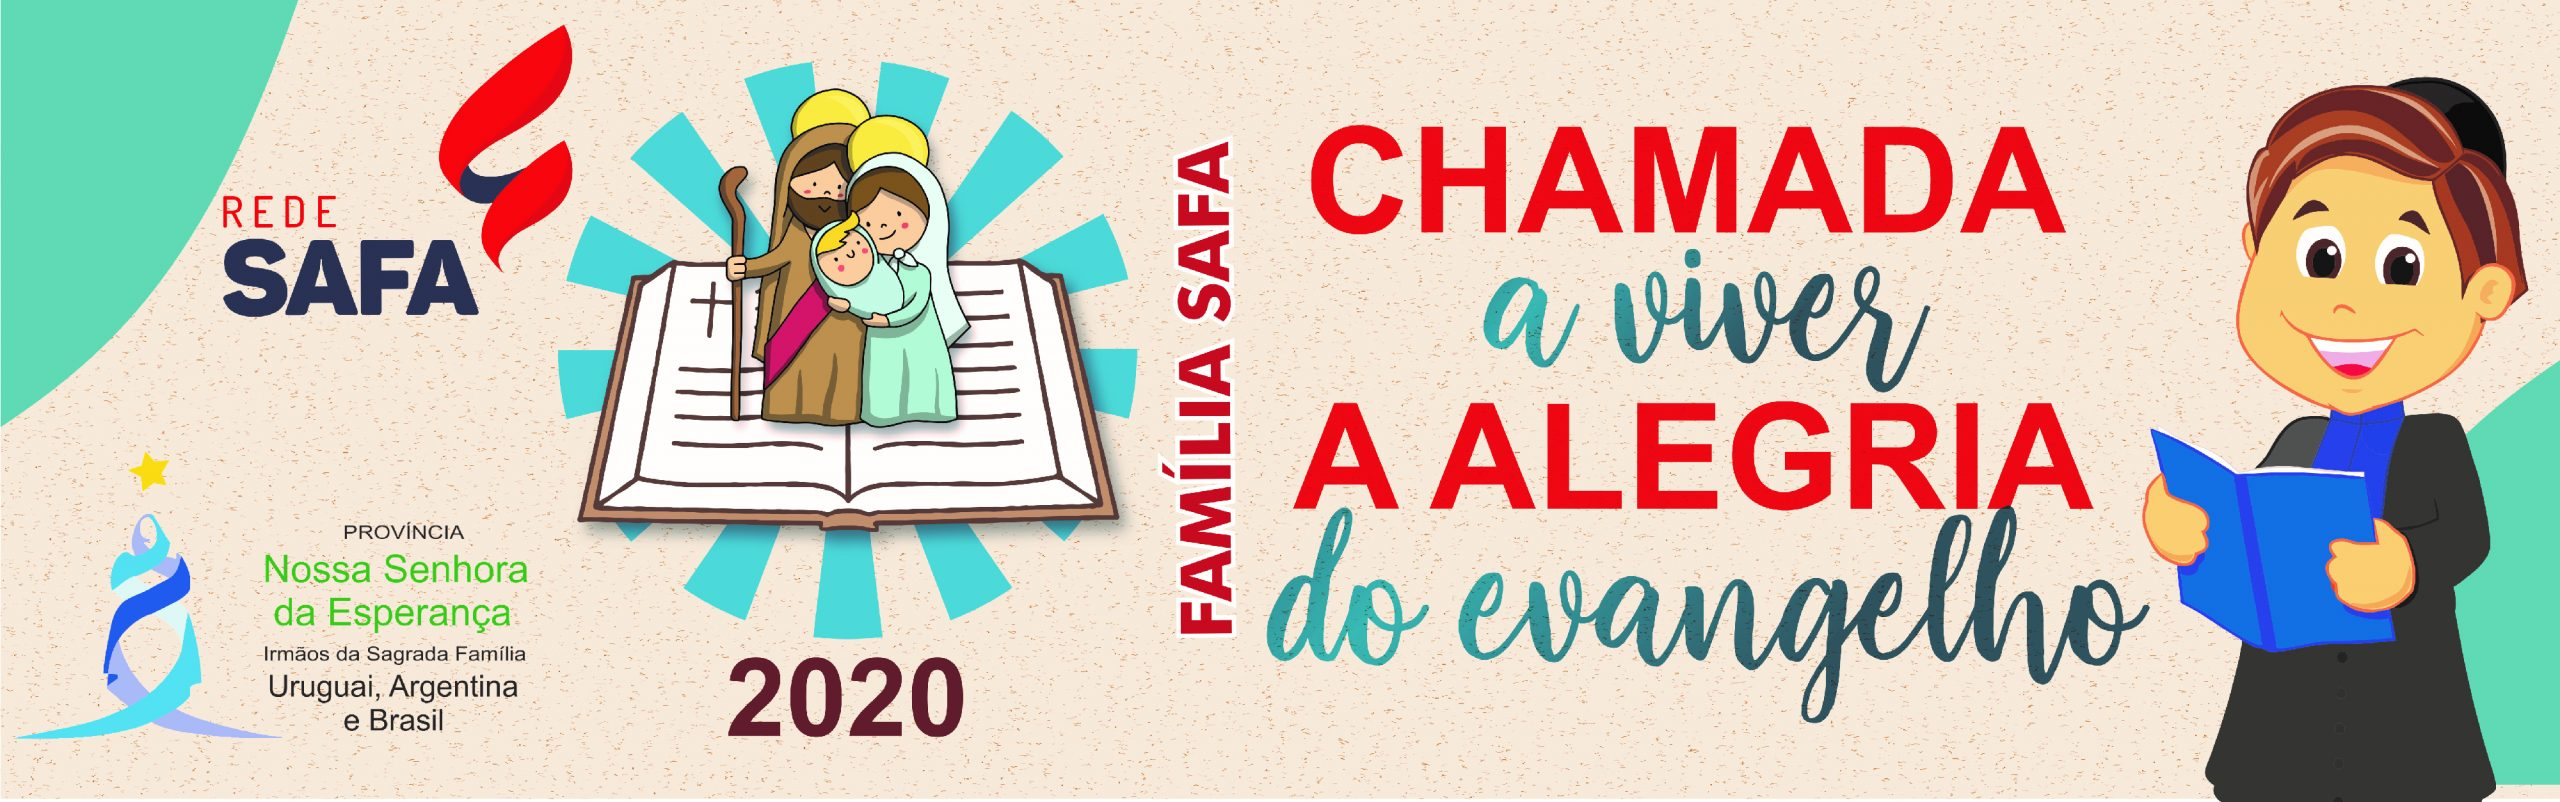 http://safa.com.br/site/wp-content/uploads/2020/01/lema2020-site-01-scaled.jpg